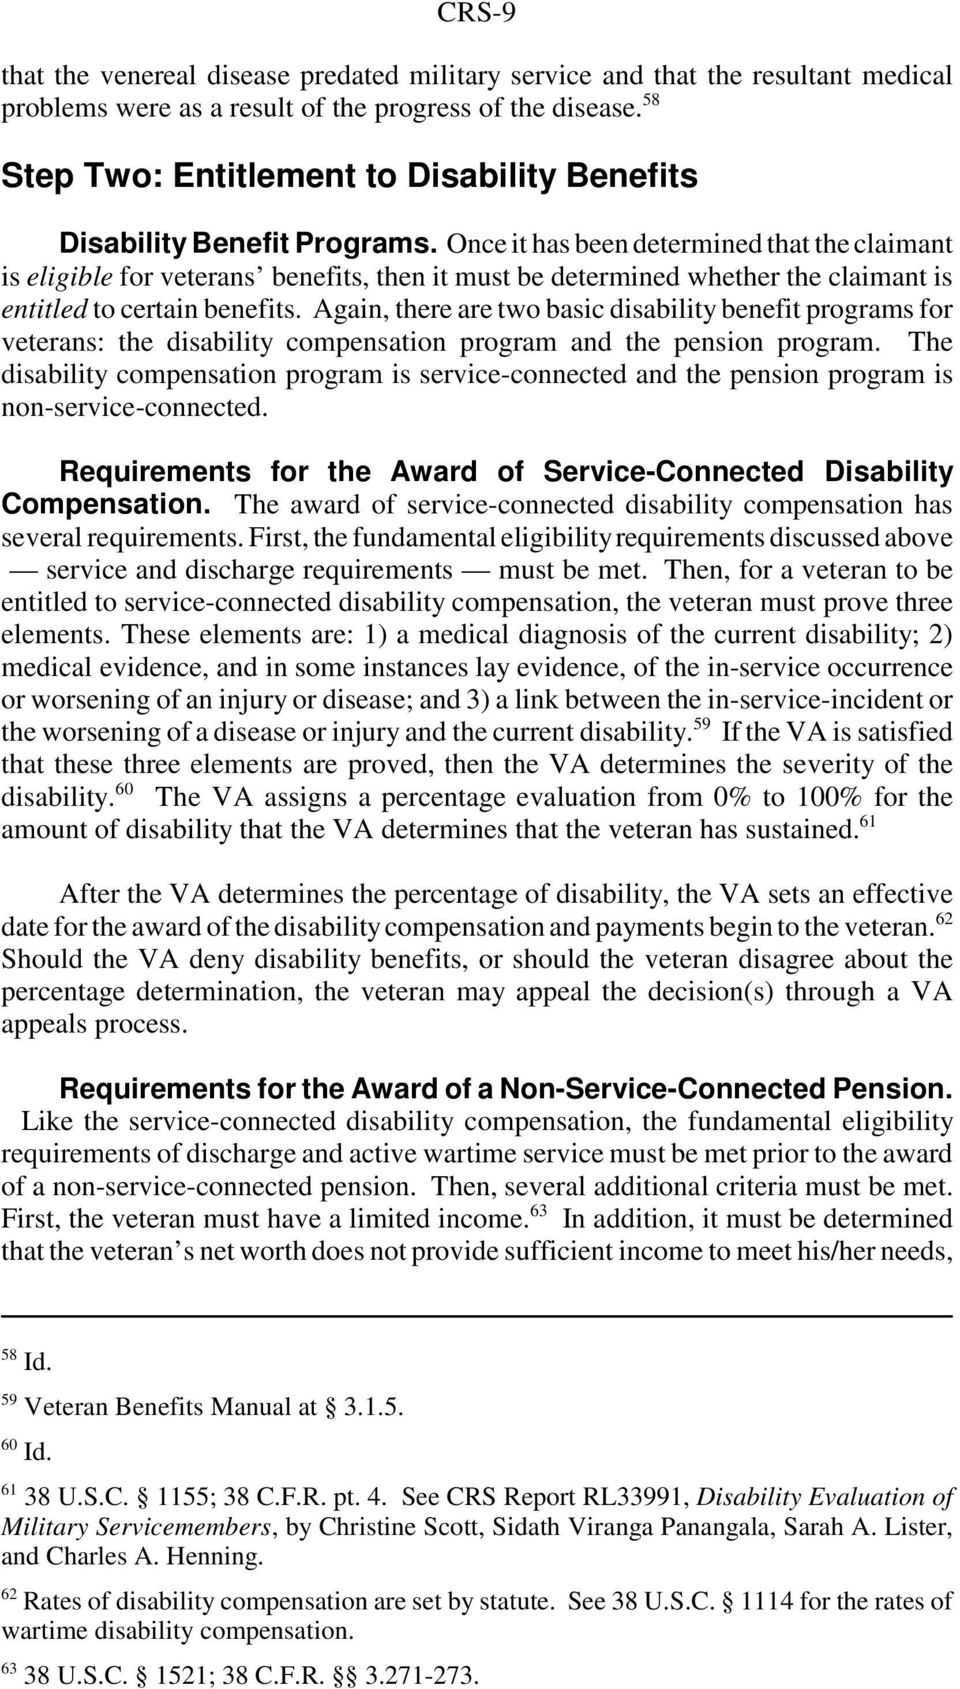 Veterans Affairs: Basic Eligibility for Disability Benefit Programs